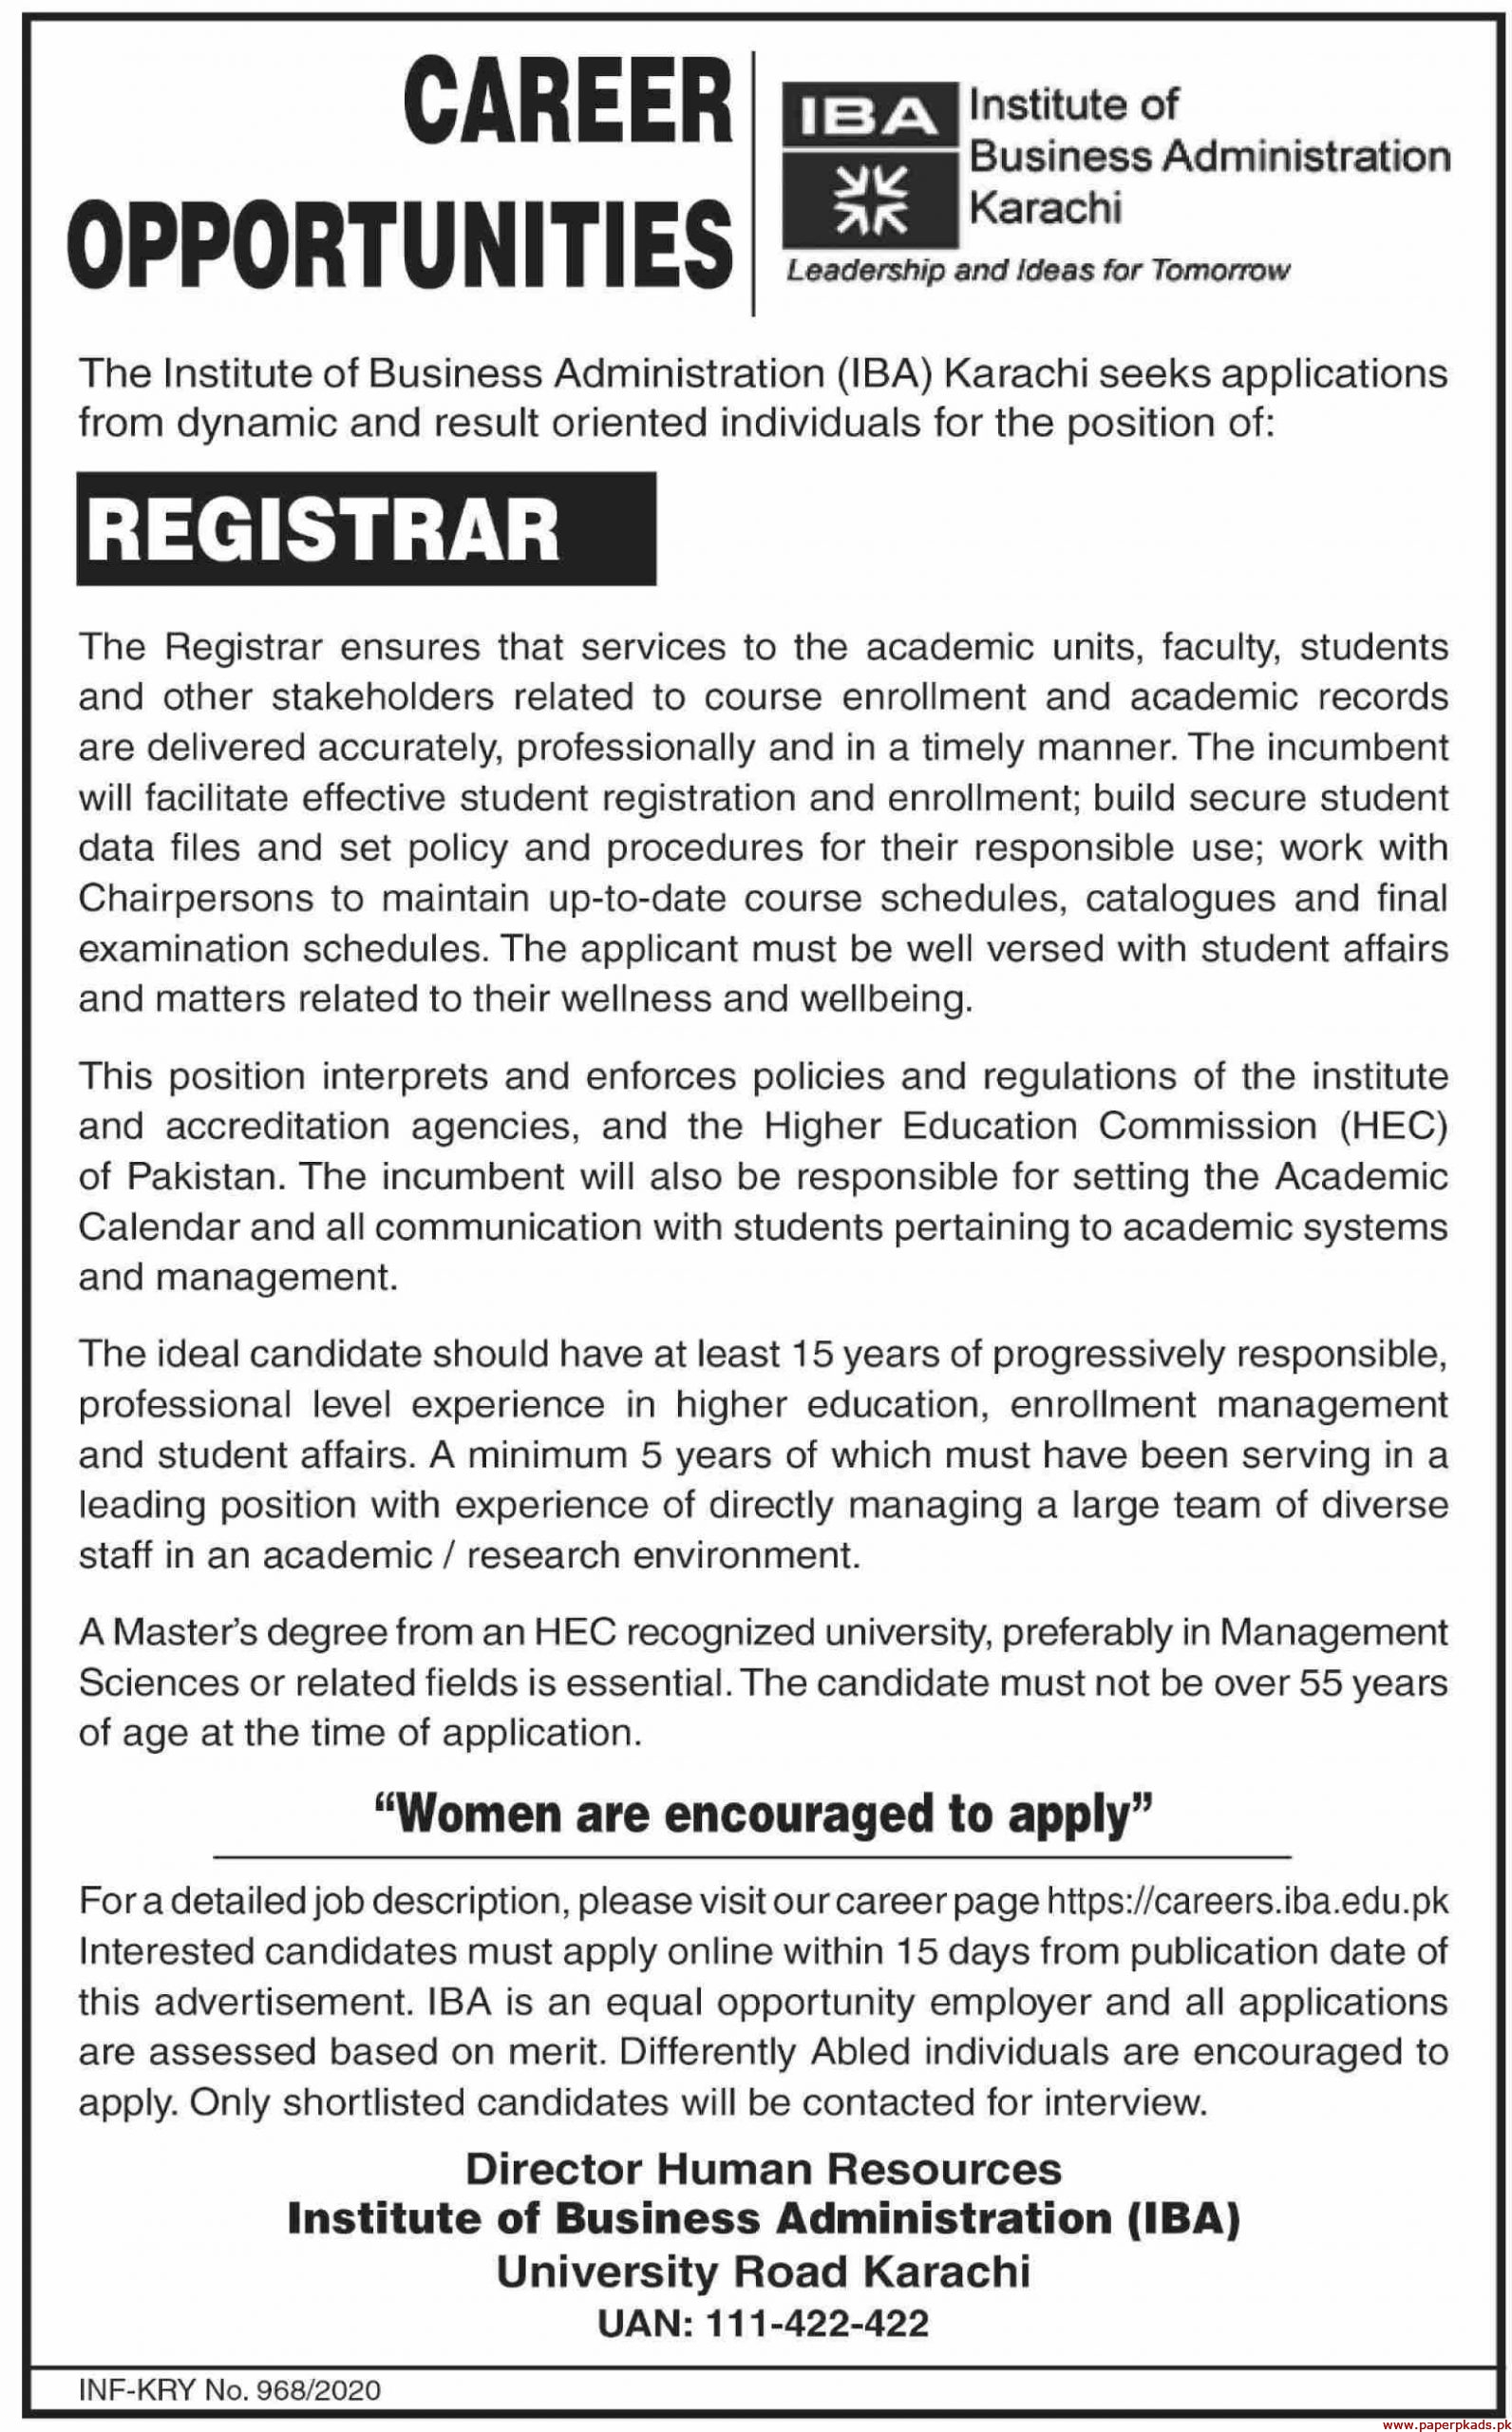 IBA Institute of Business Administration Karachi Jobs 2020 Latest